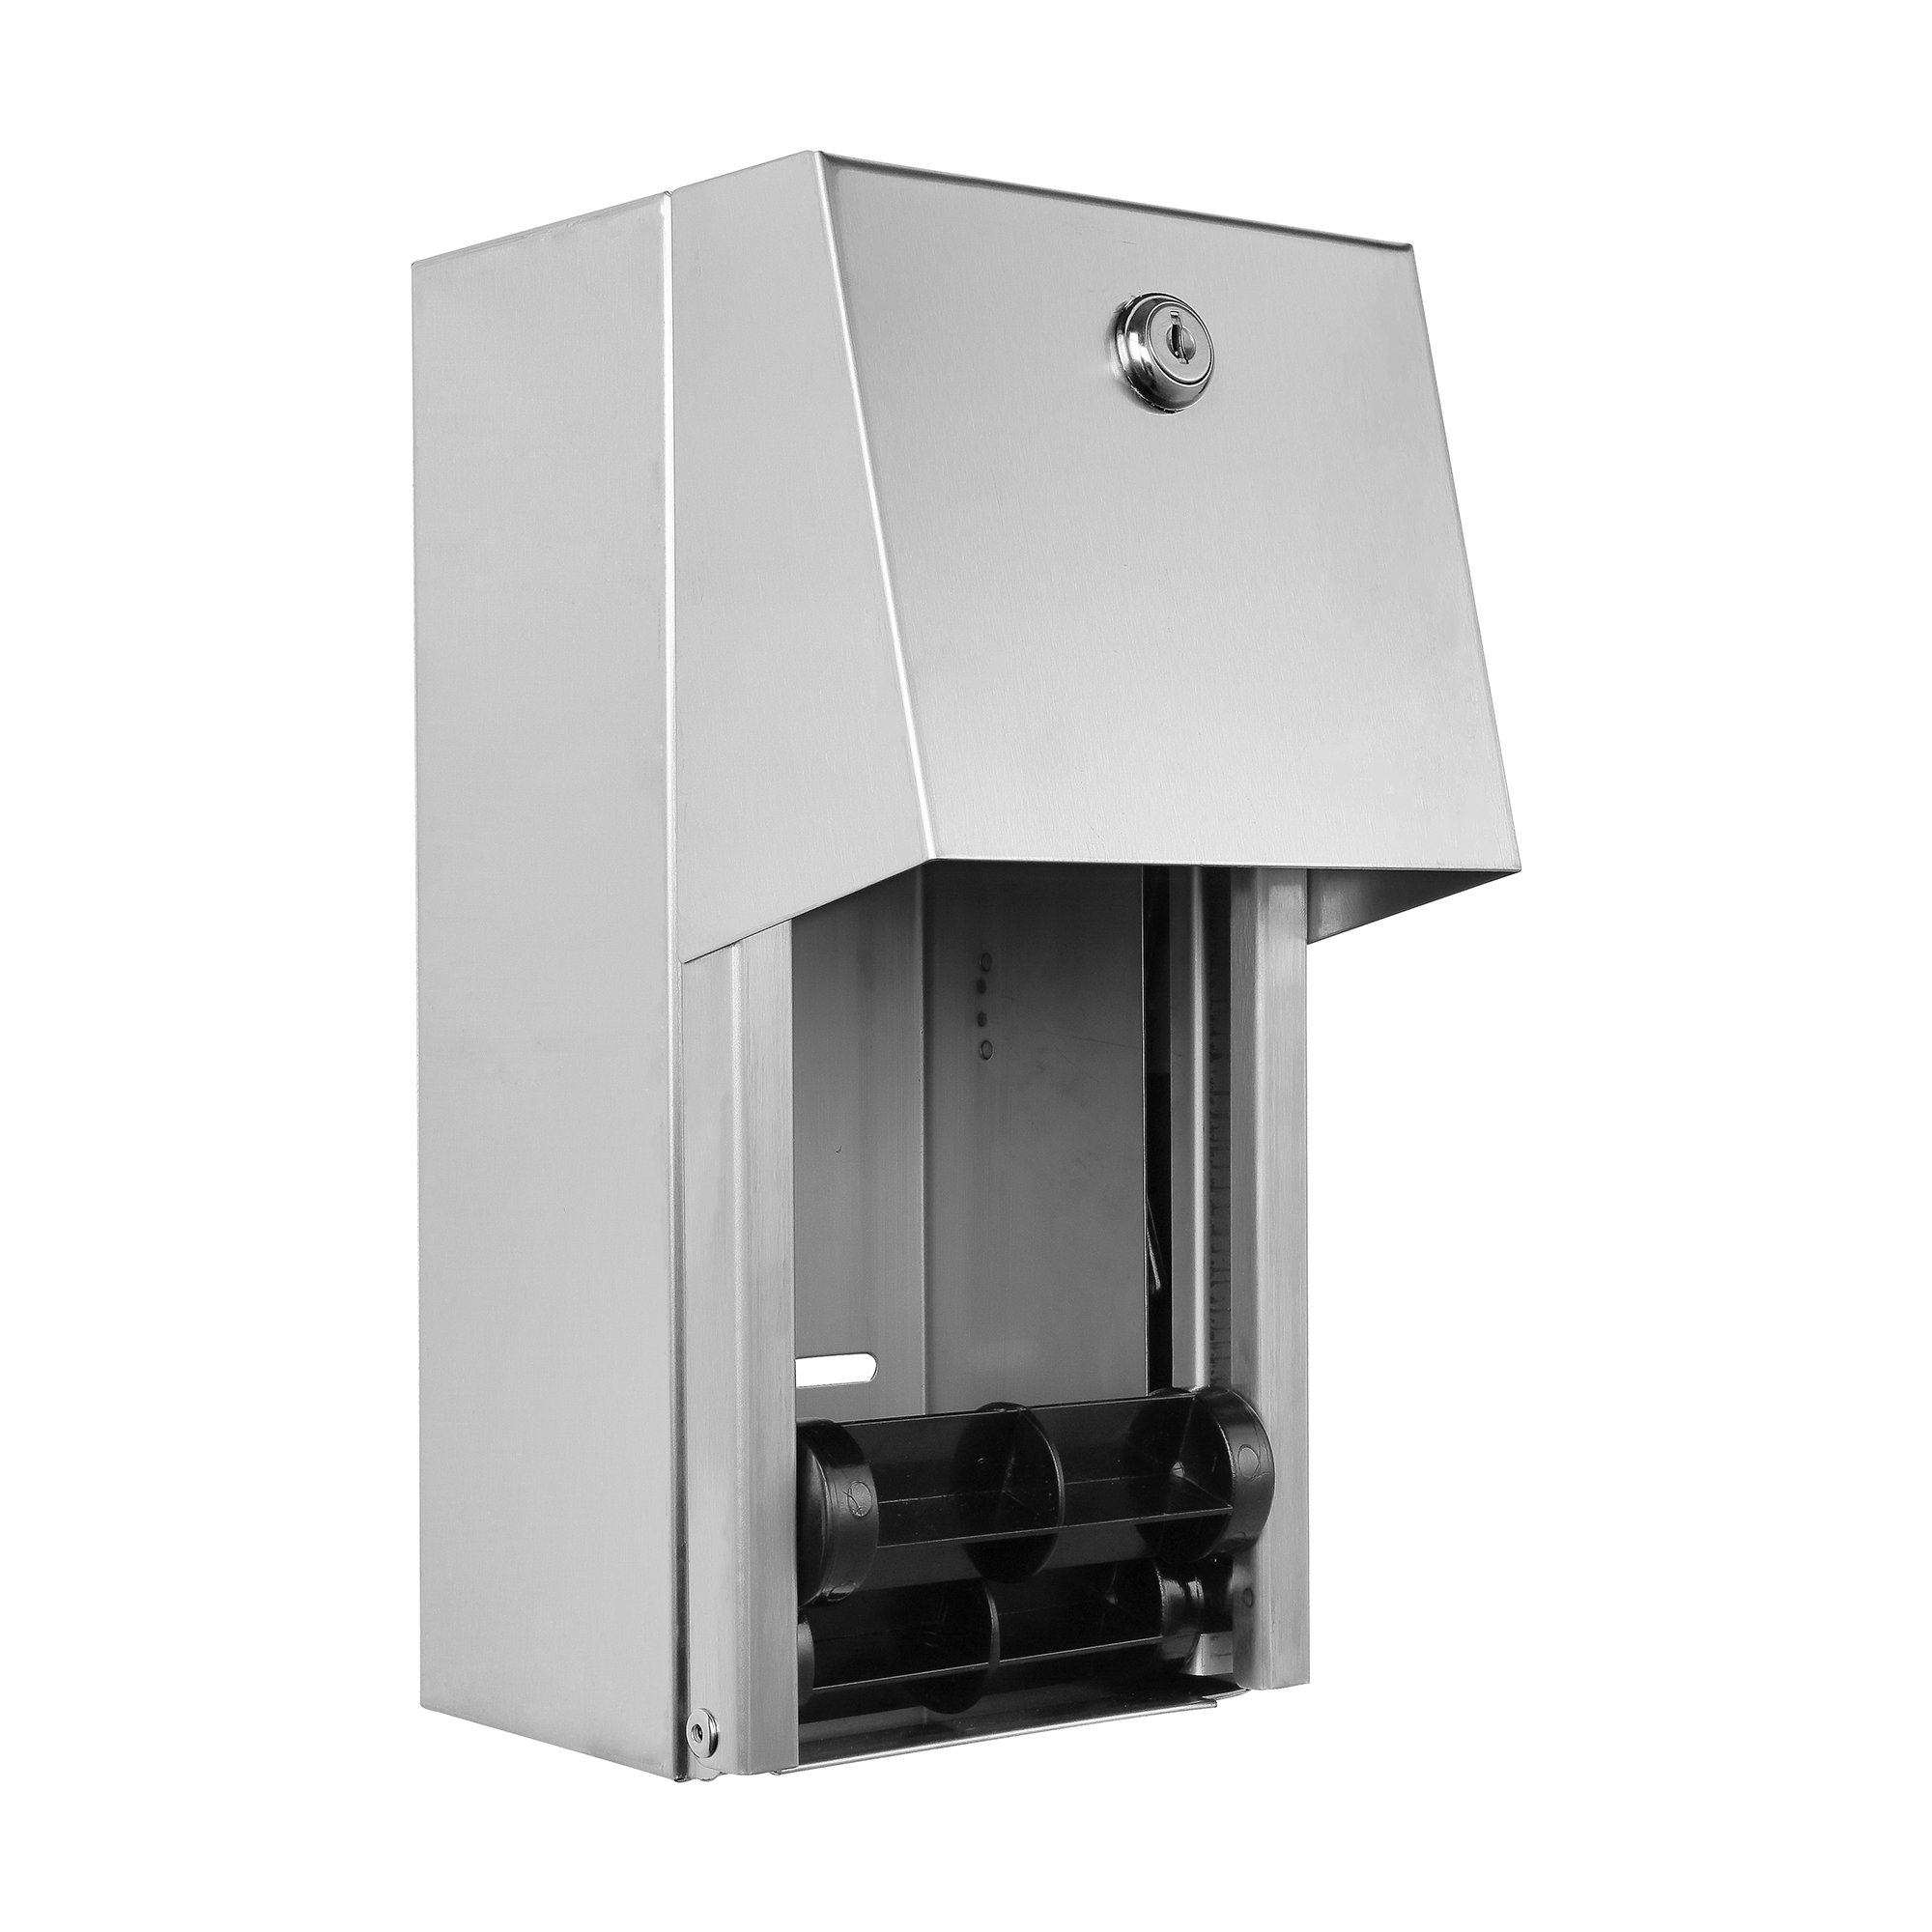 Dual Rolls Toilet Paper Dispenser - Lockable Design - 304 Grade Stainless Steel by Dependable Direct (Image #1)